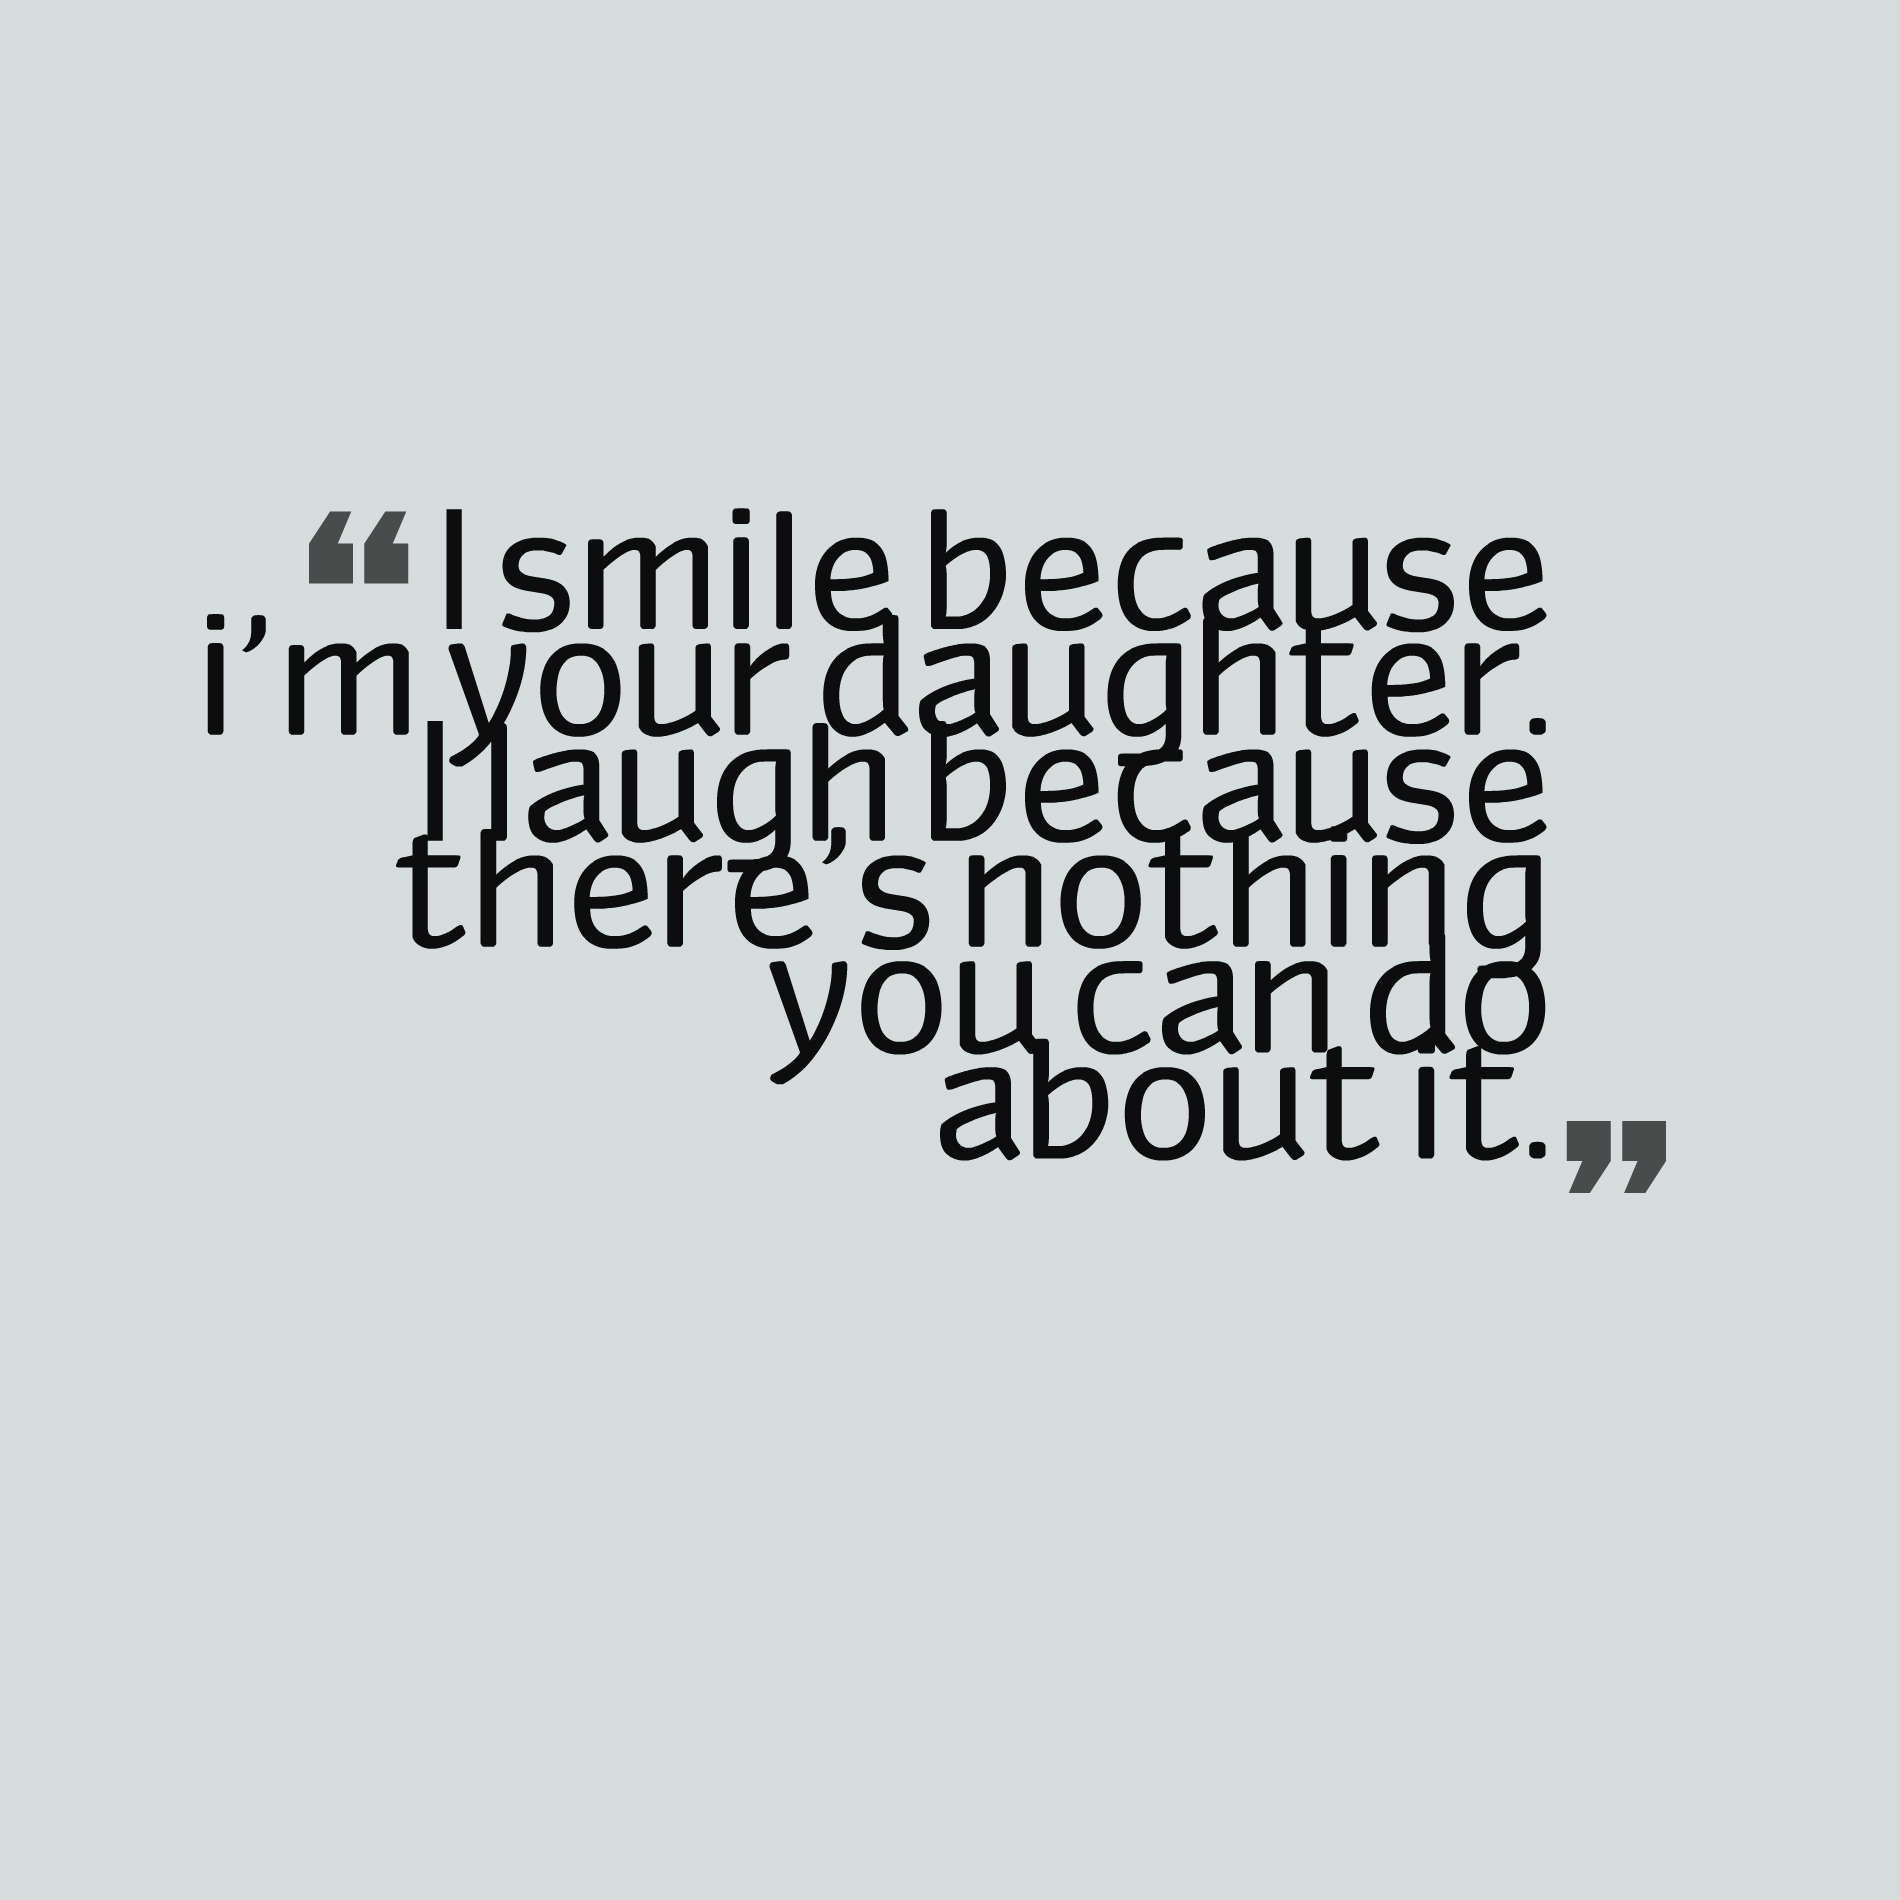 Because About Because Can Your Sister Theres I You Do You My Laugh Love Nothing I It